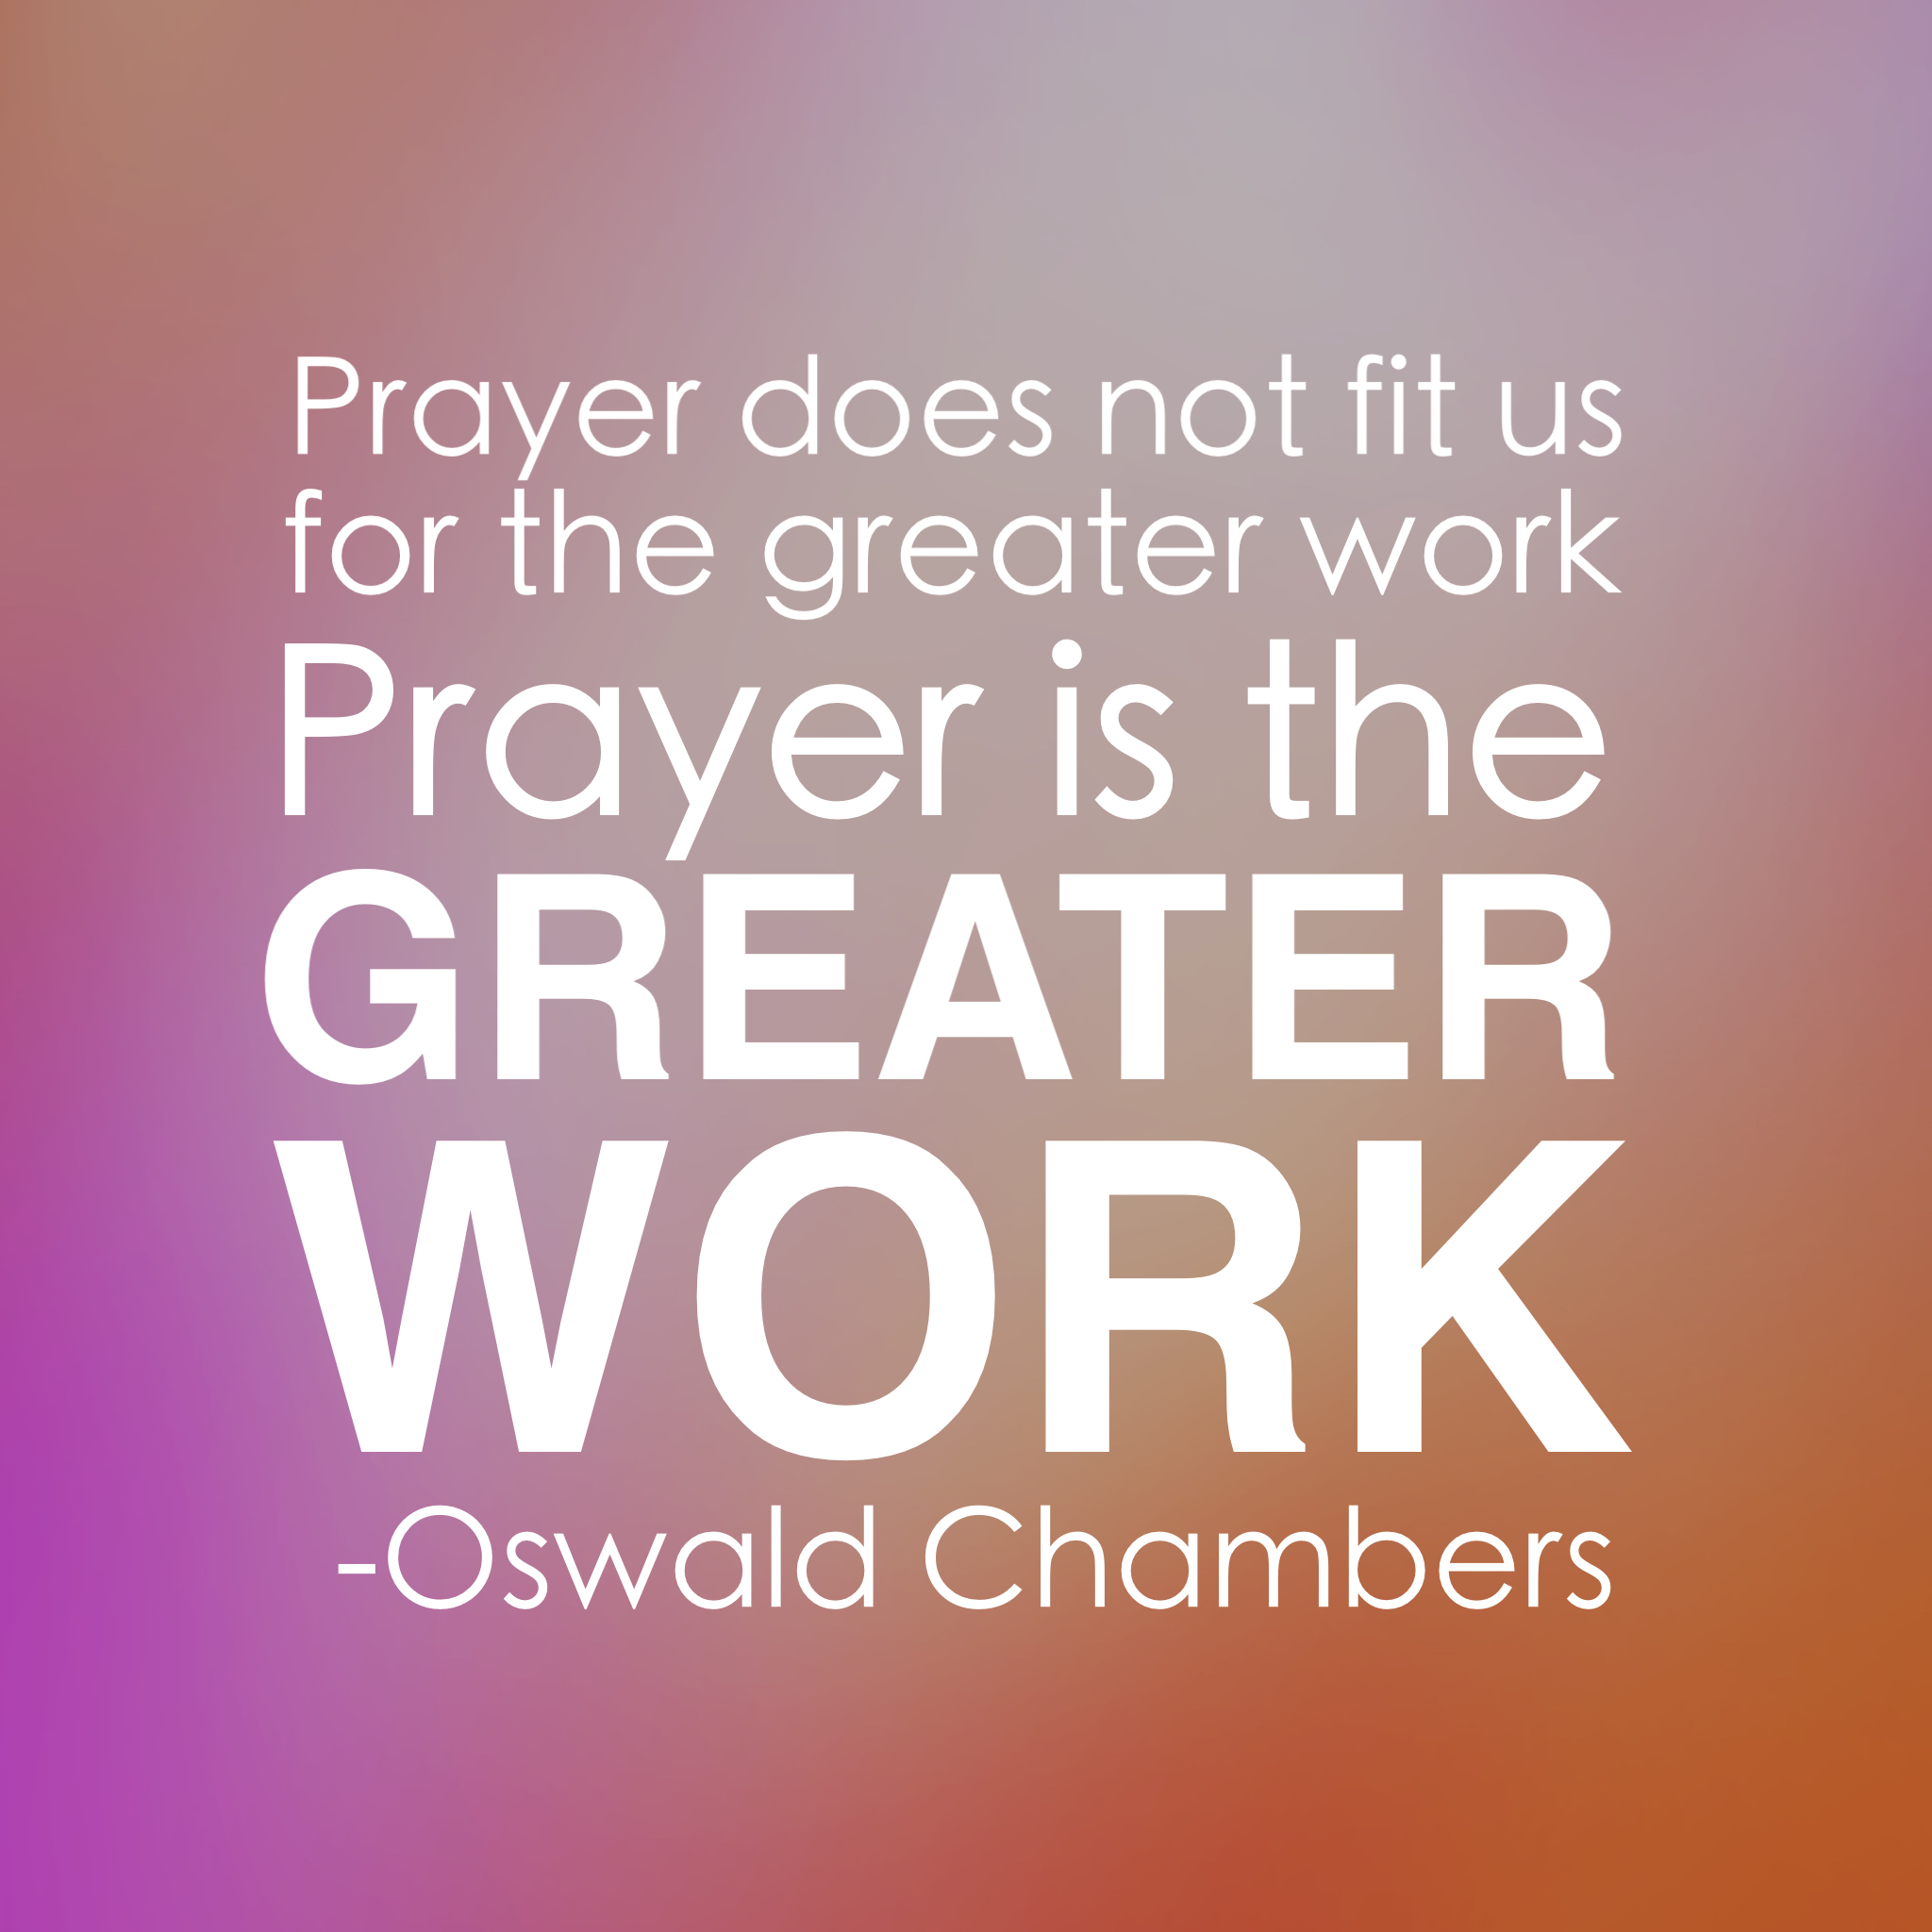 """Prayer does not fit us for the greater work, prayer is the greater work."" -Oswald Chambers Inspire your heart to prayer. www.chereehayes.com"